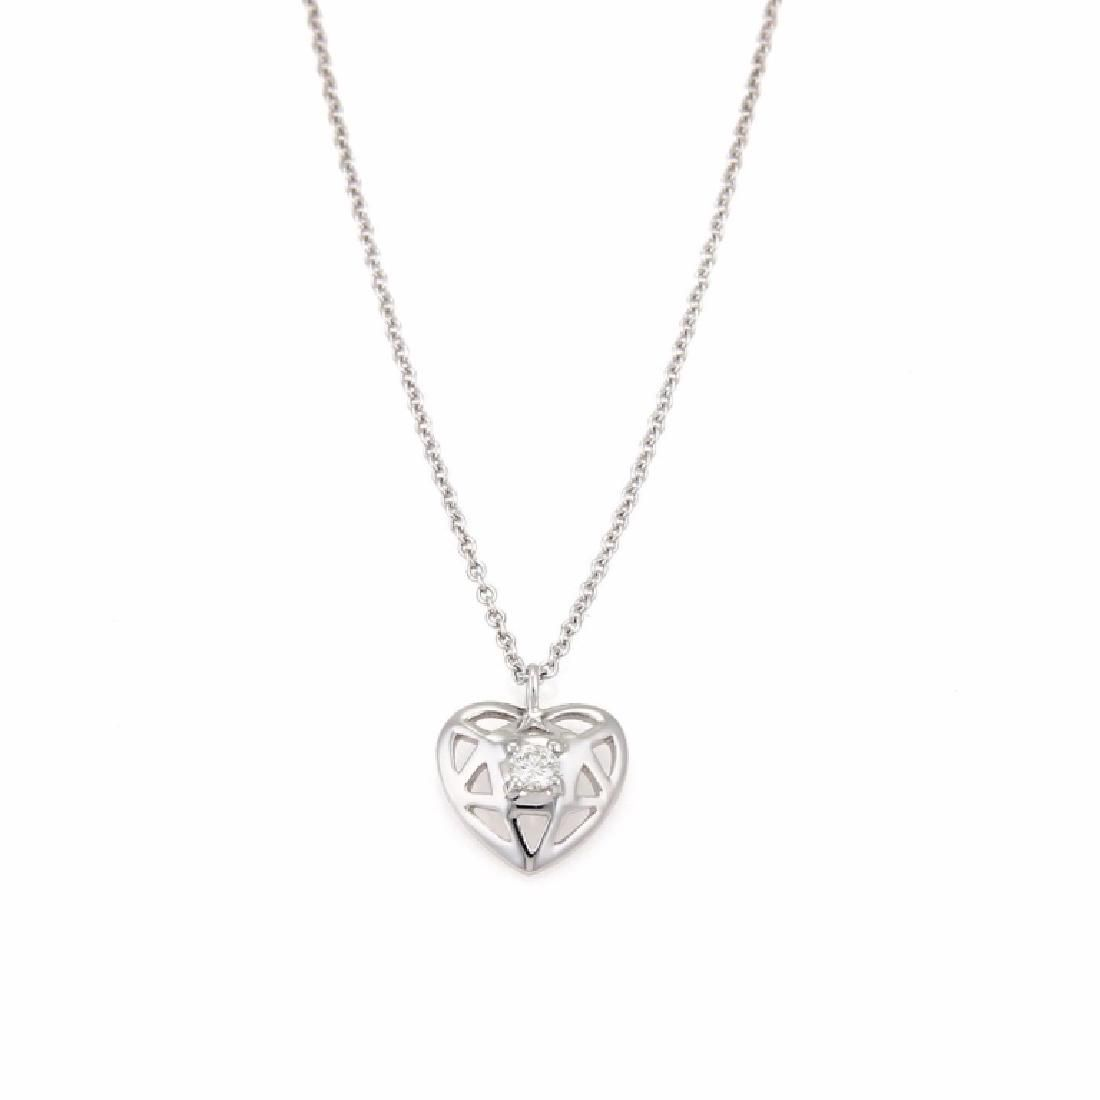 Tiffany & Co Picasso 18k White Gold Heart Necklace